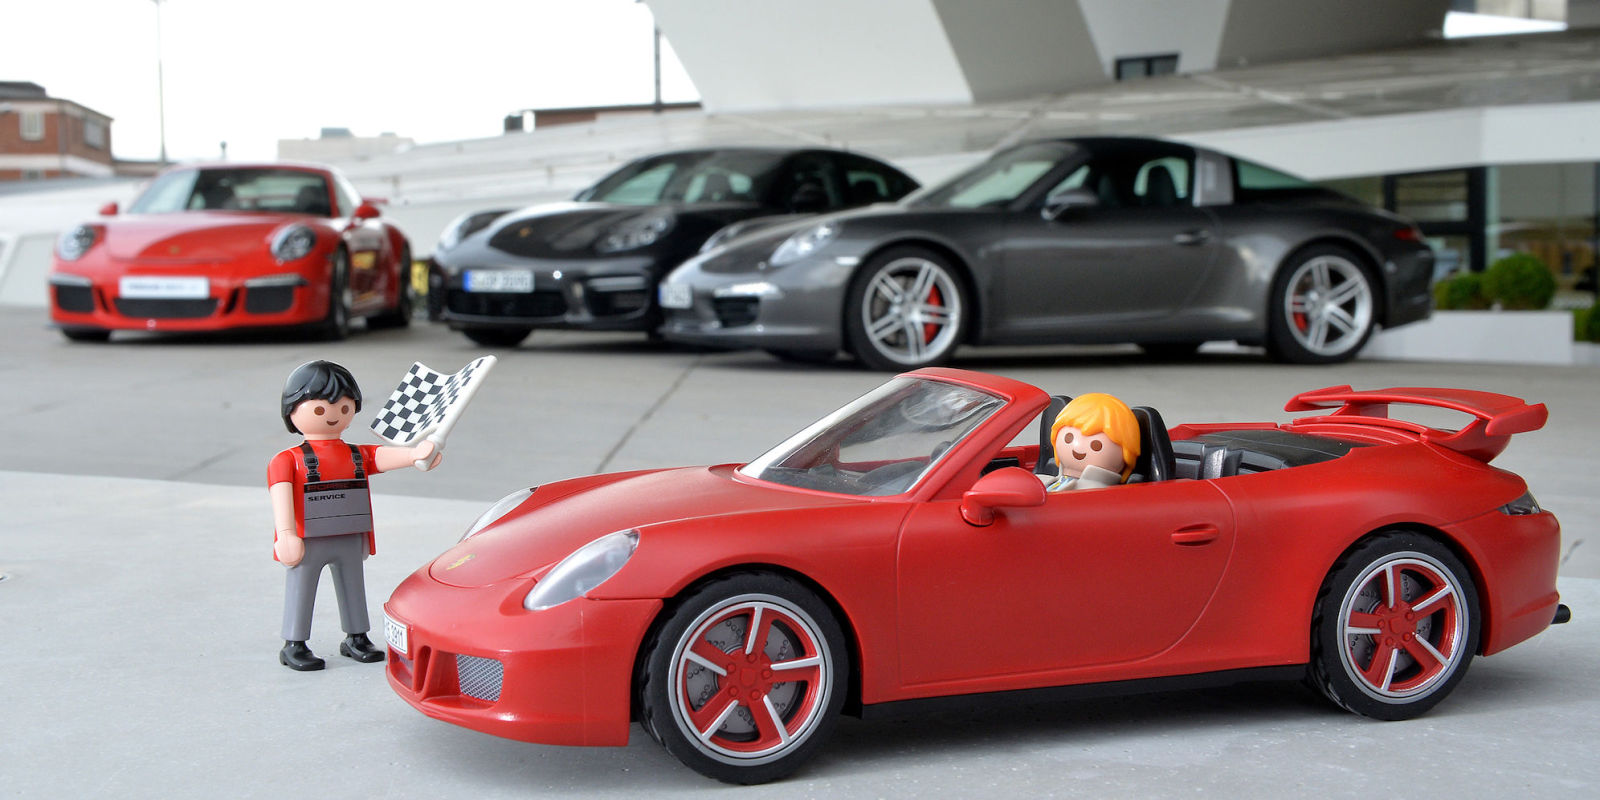 this porsche 911 carrera s toy offers amazing detail news